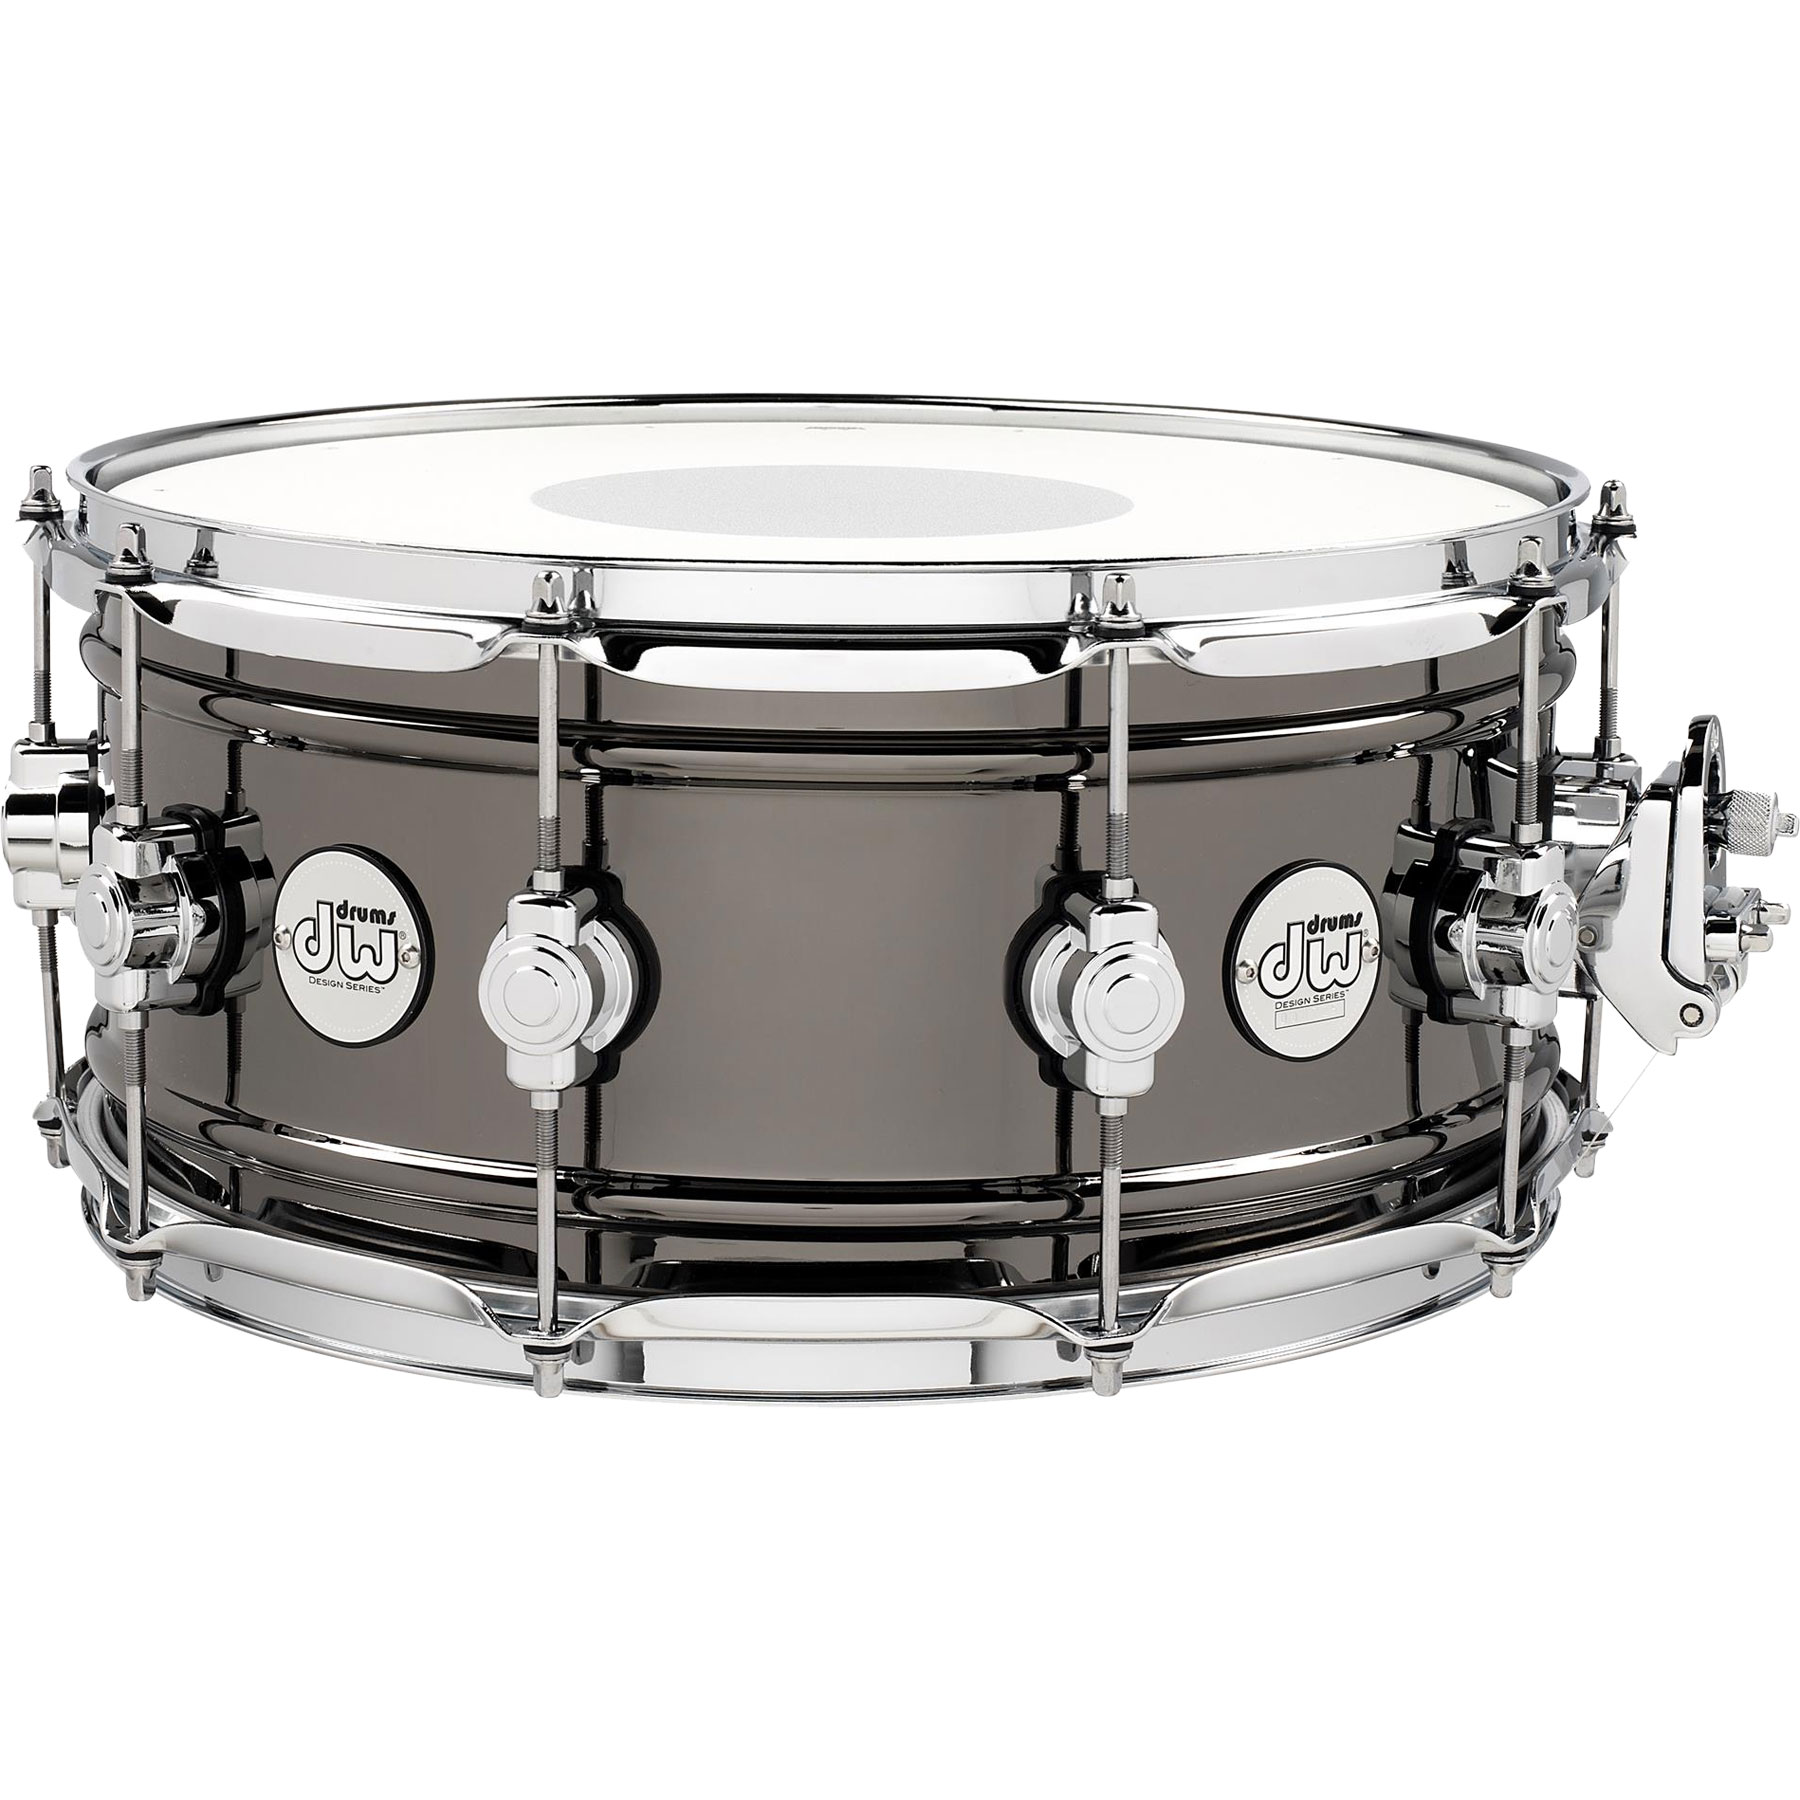 "DW 6.5"" x 14"" Design Series Black Nickel Over Brass Snare Drum"